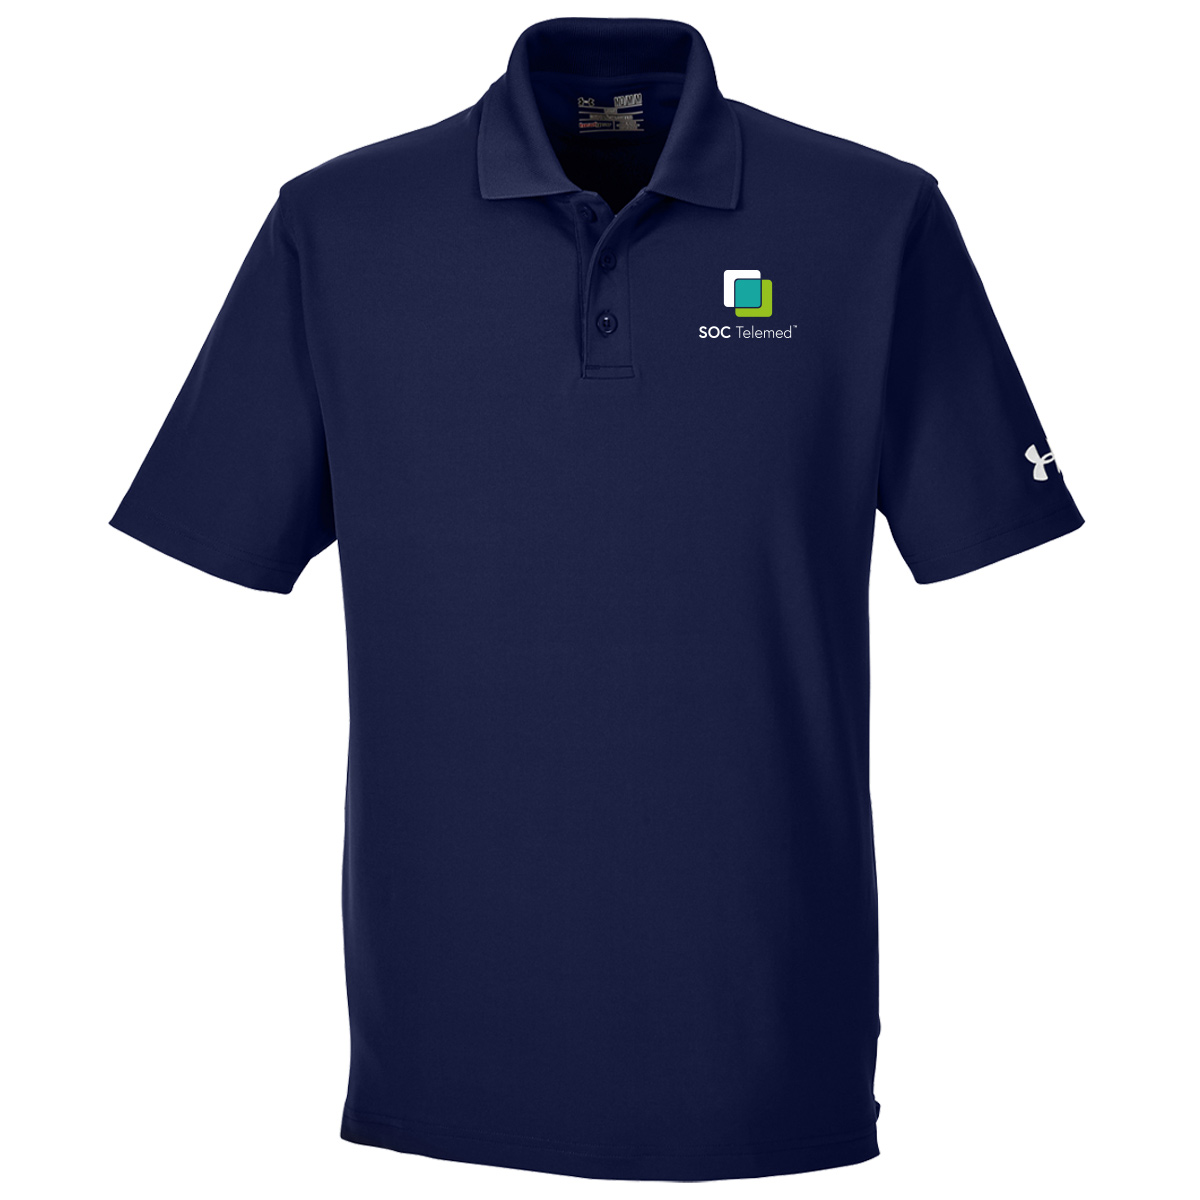 SOC TELEMED Men's UA Performance Corp Polo - Navy